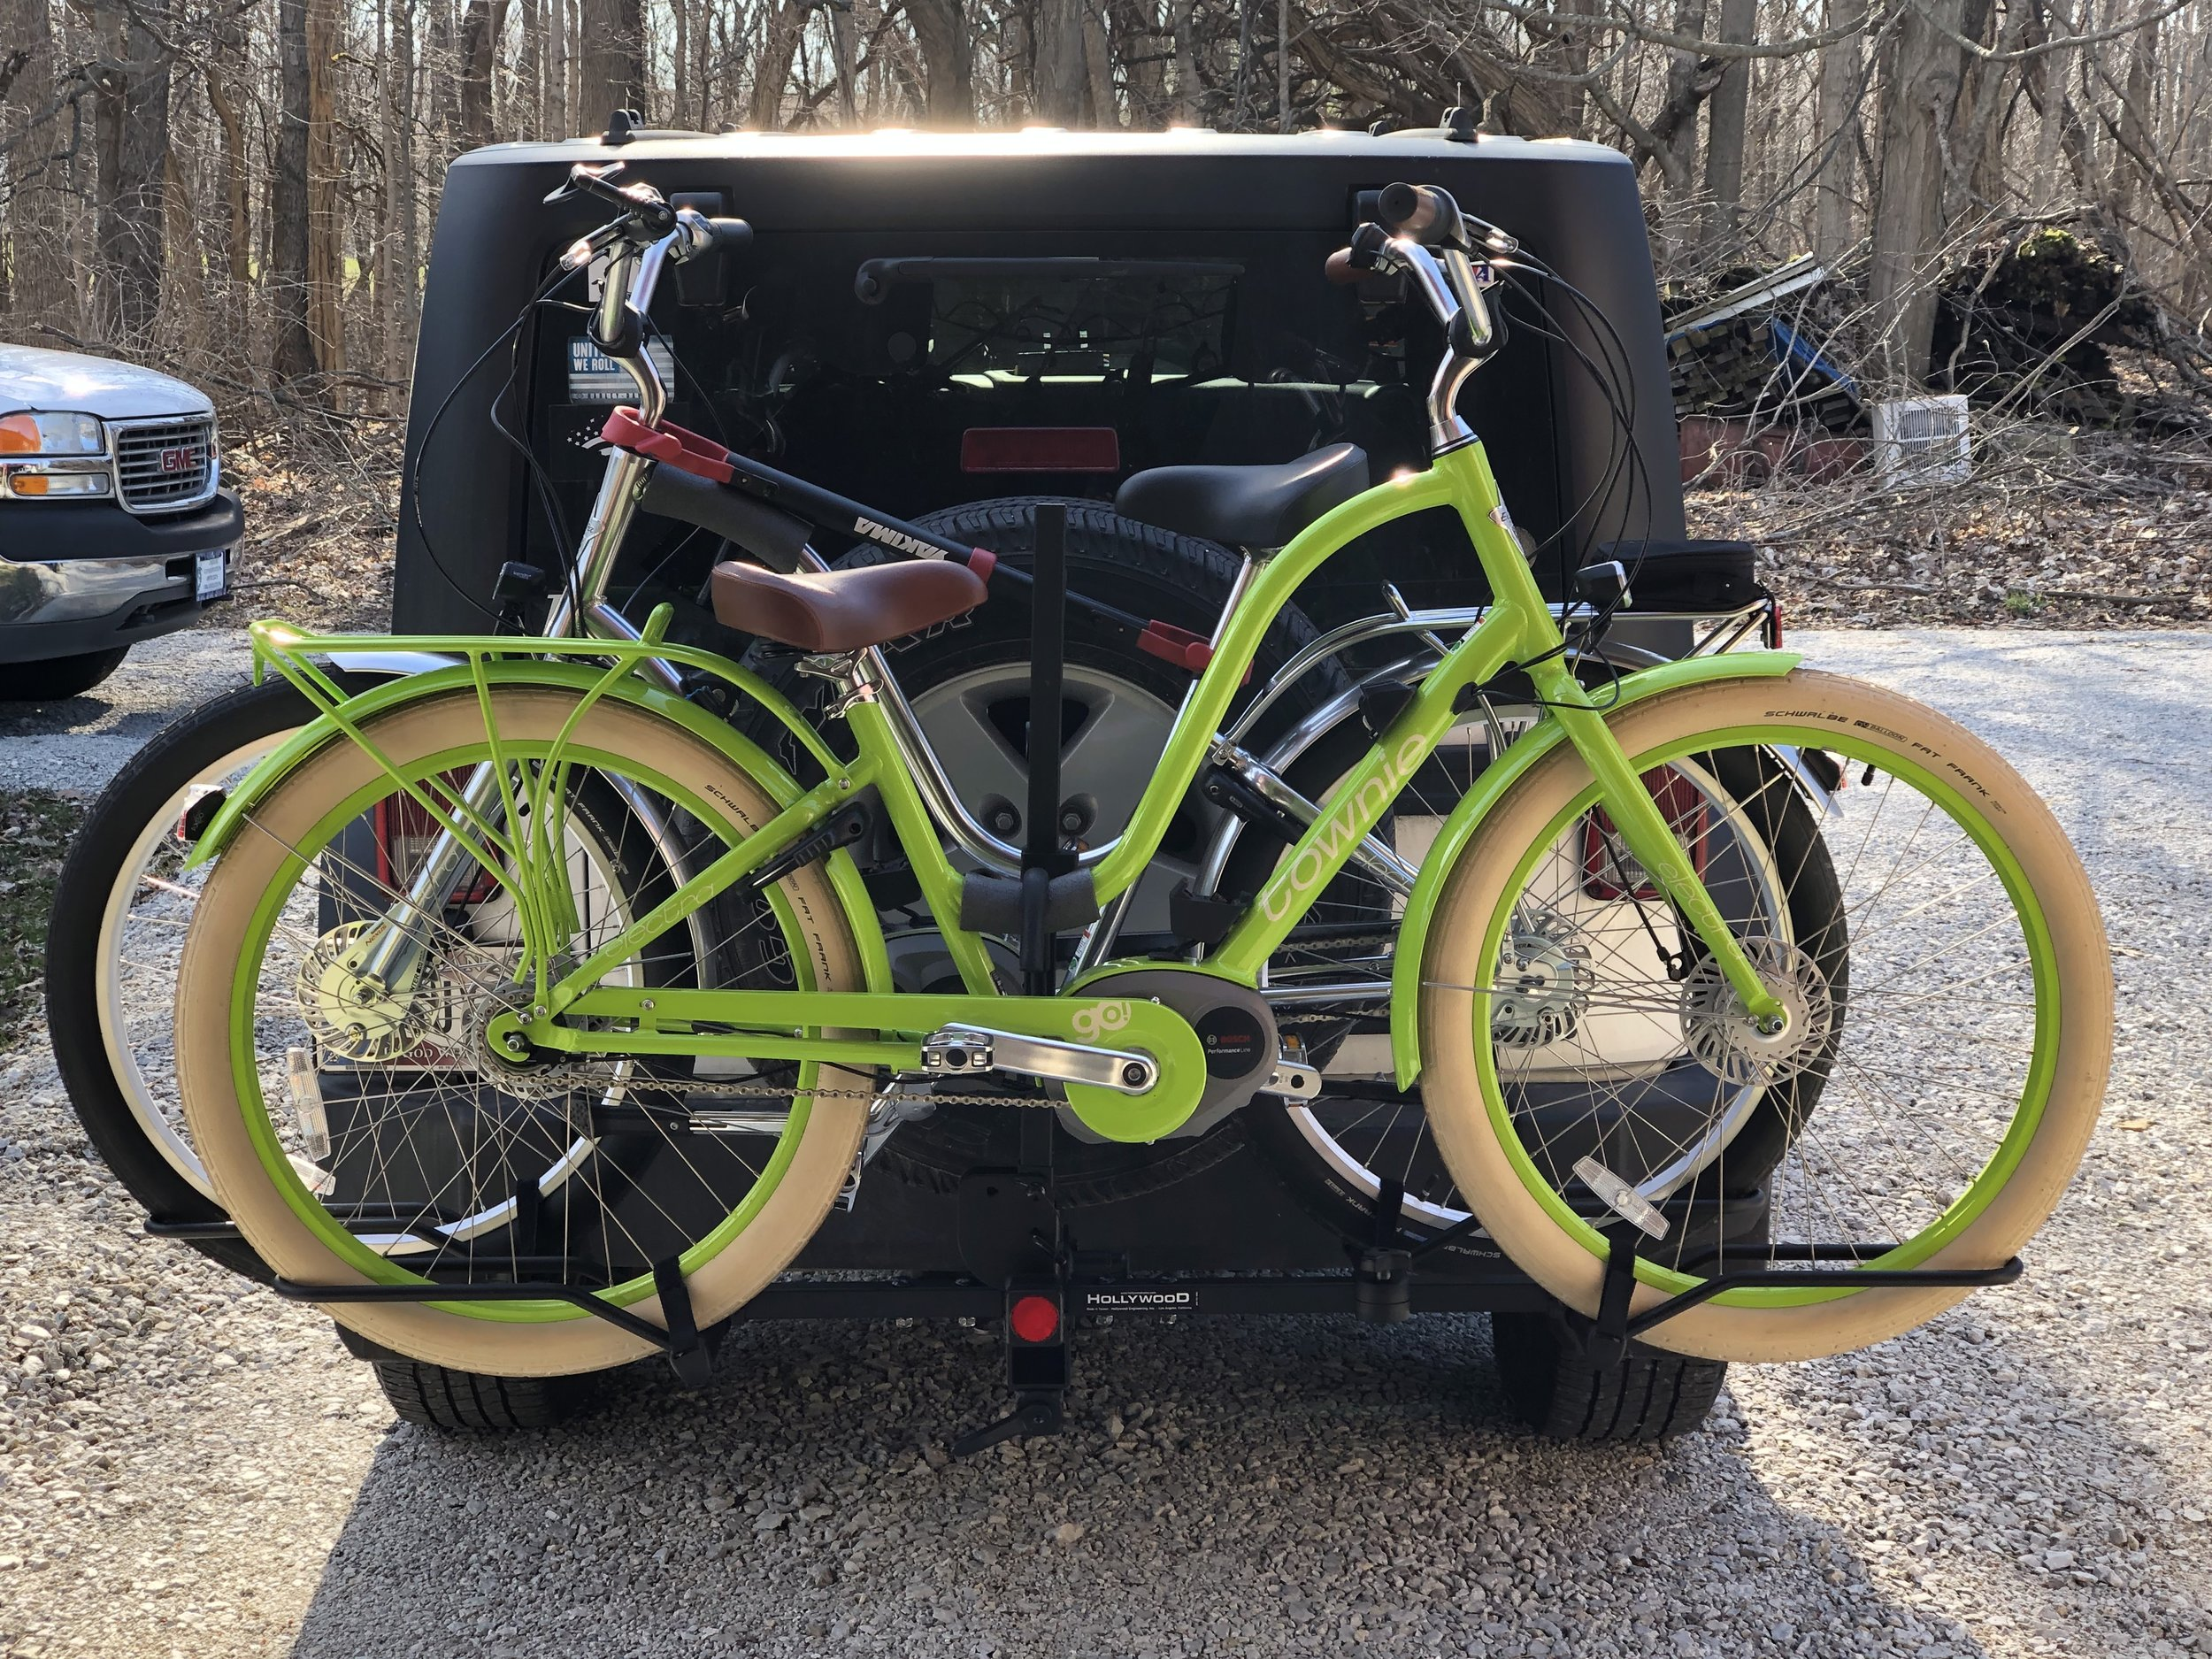 The Mullet's electric bikes packed up on the Jeep, ready for their next adventure.